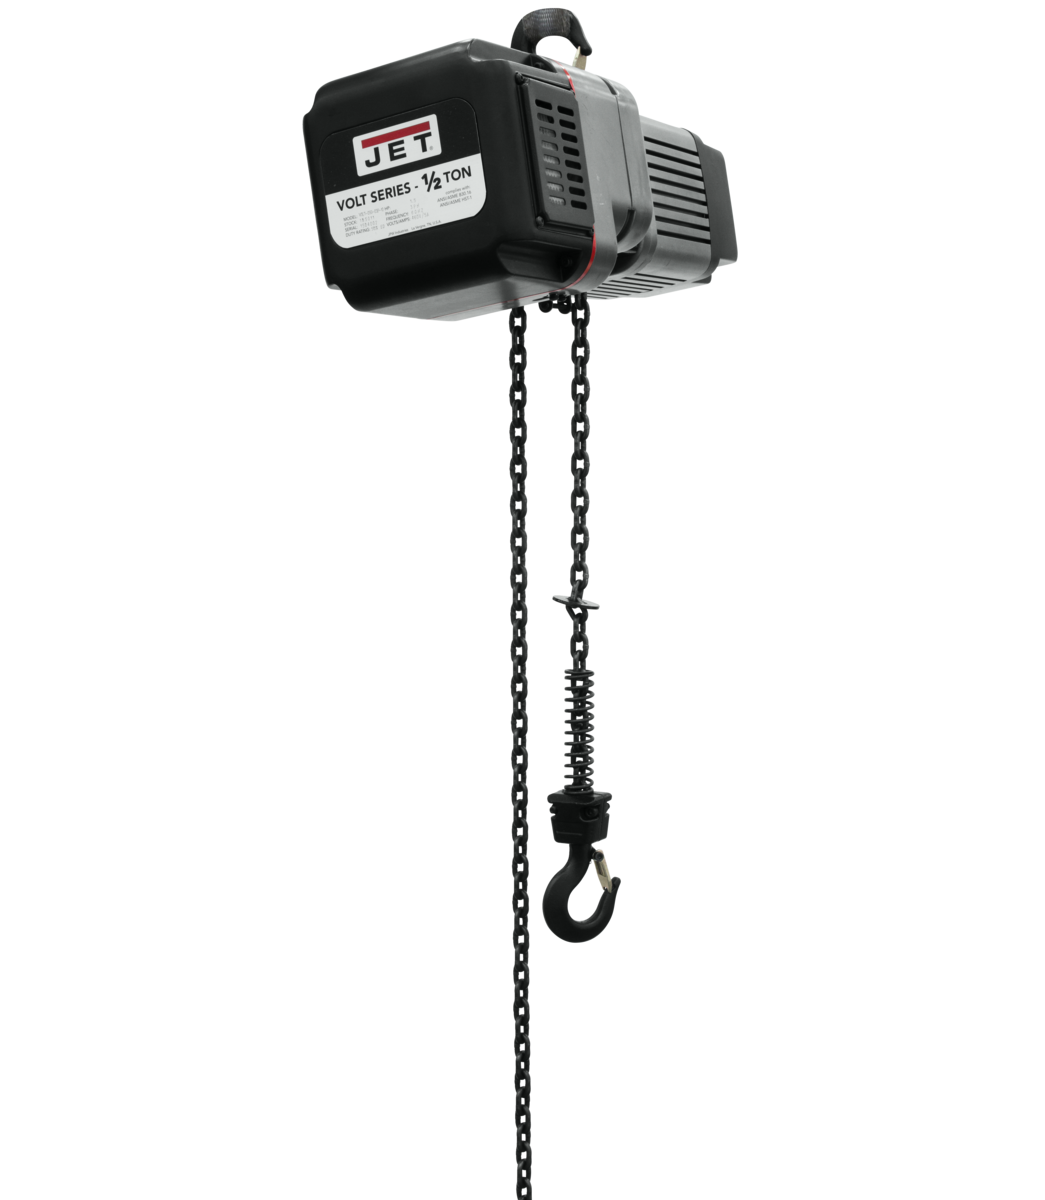 VOLT 1/2T VARIABLE-SPEED ELECTRIC HOIST 3PH 460V 10' LIFT